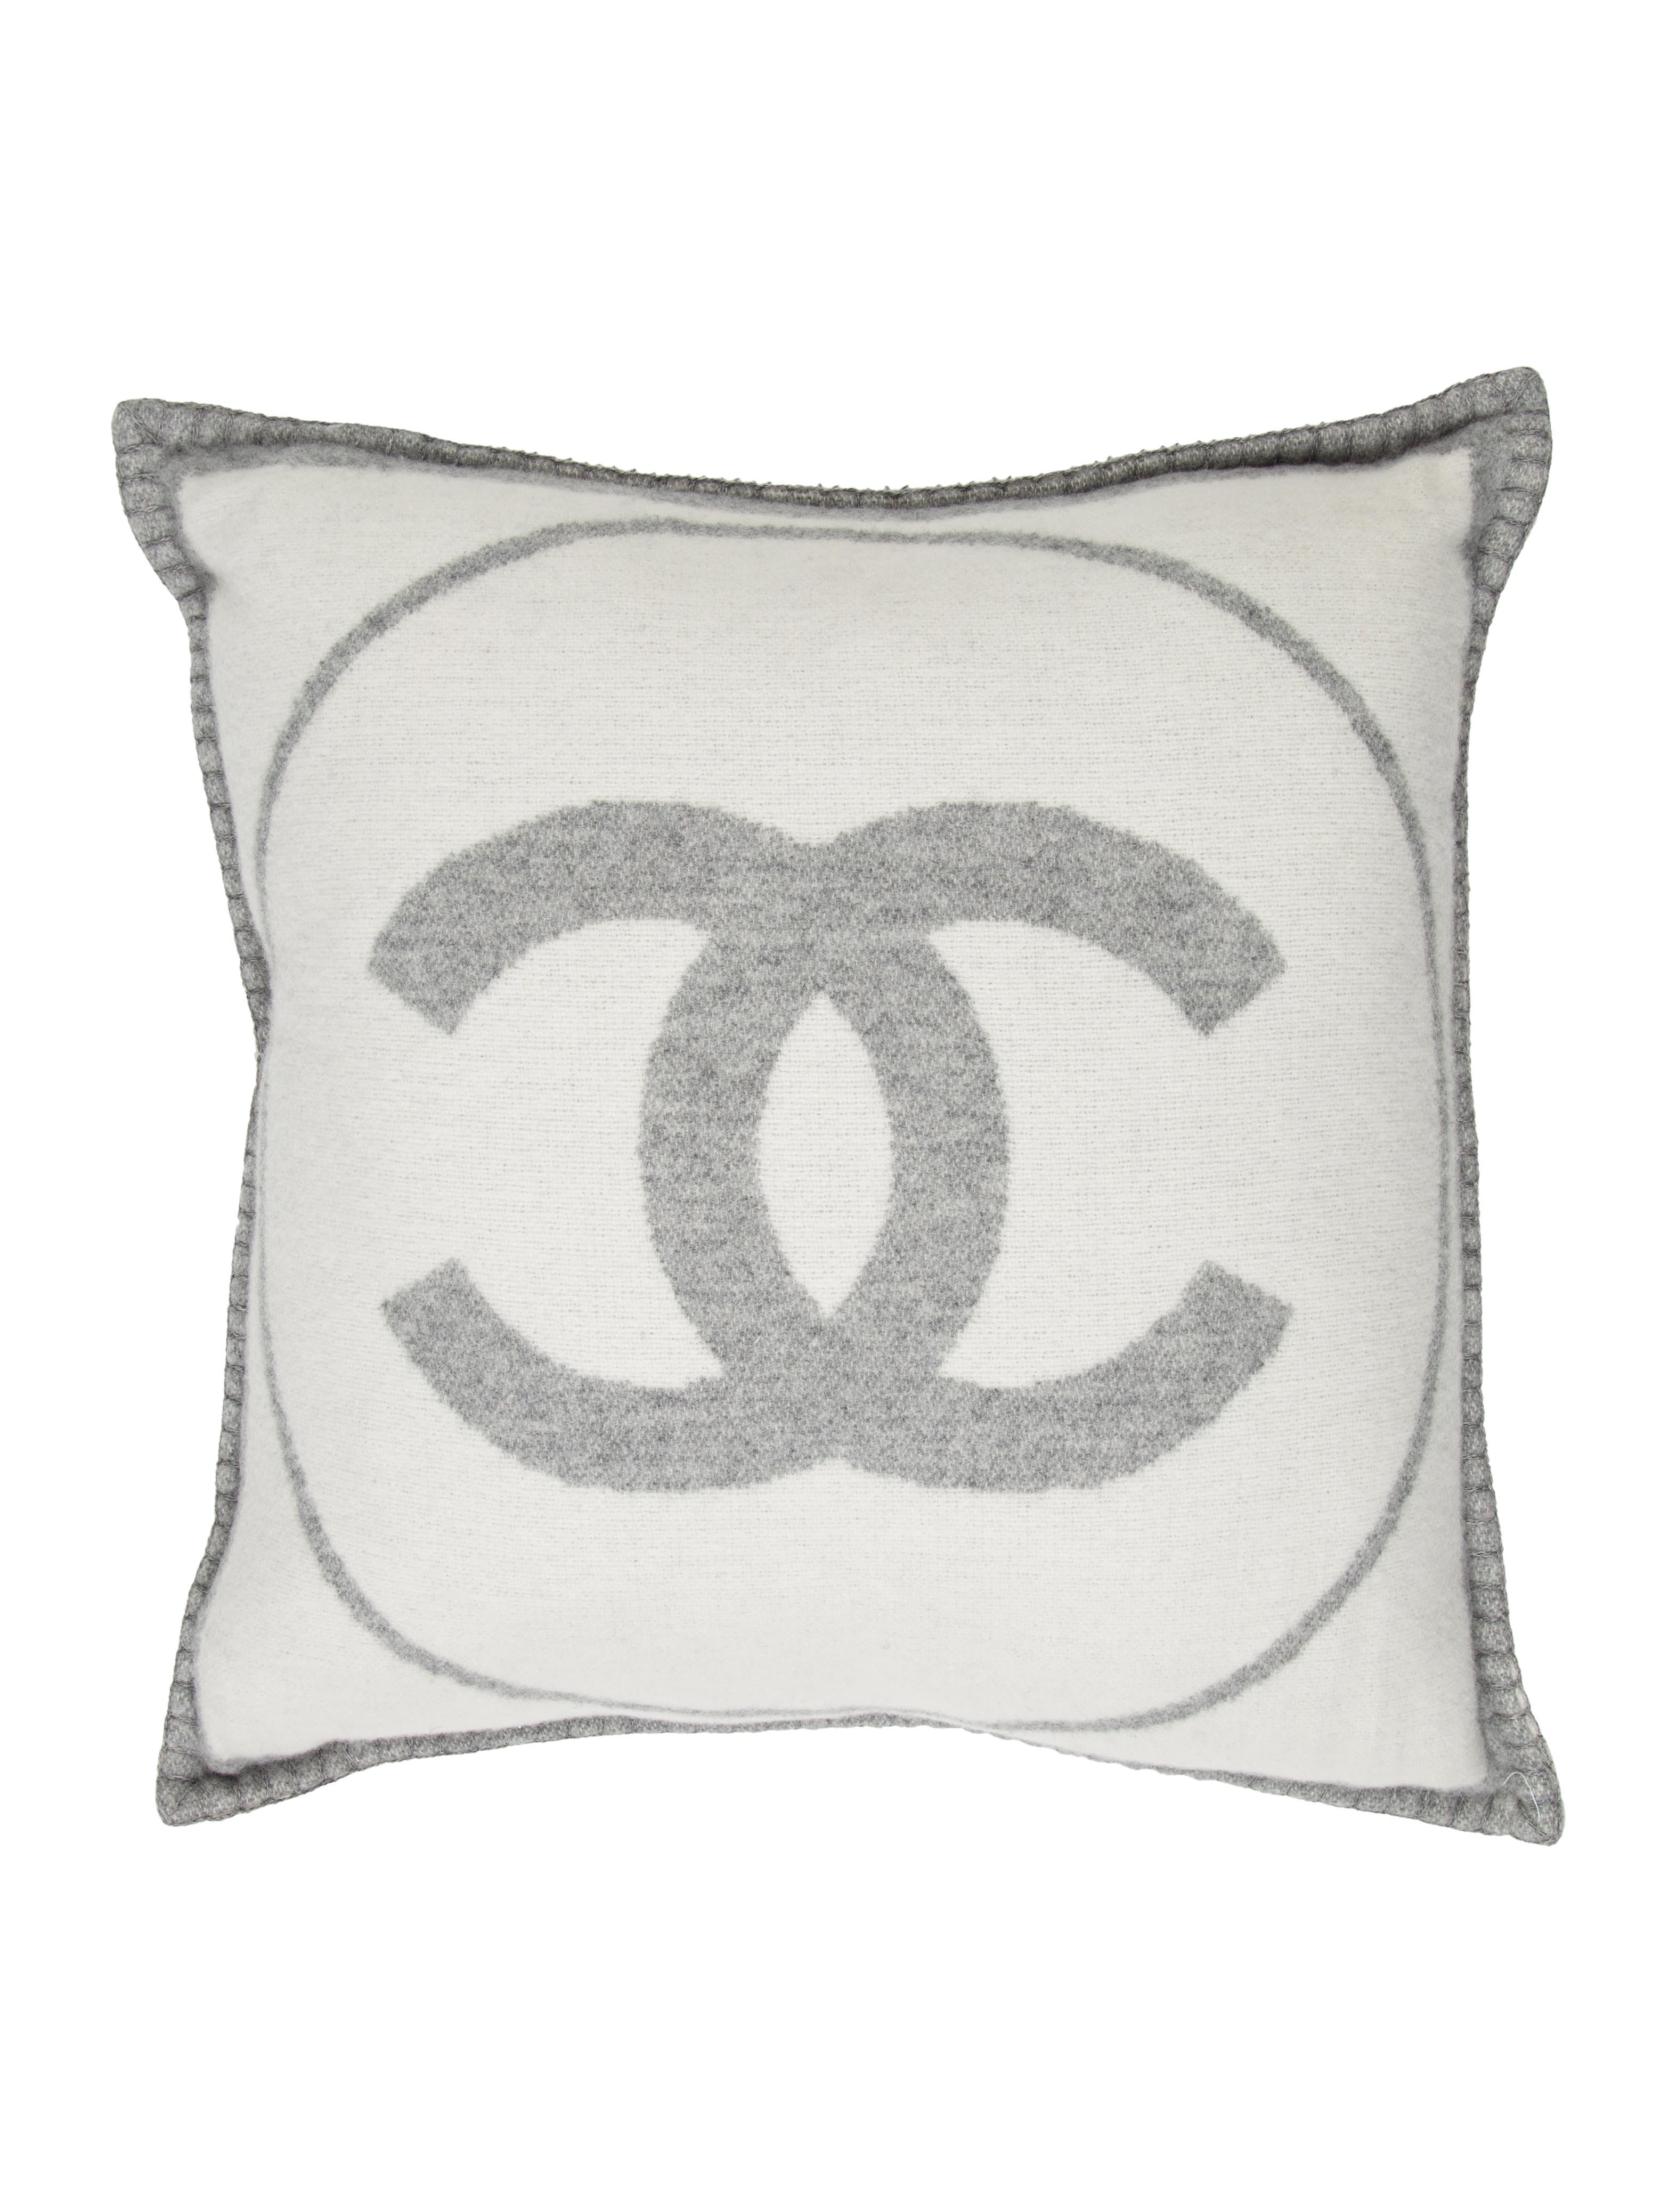 Chanel CC Throw Pillow - Pillows And Throws - CHA180332 The RealReal